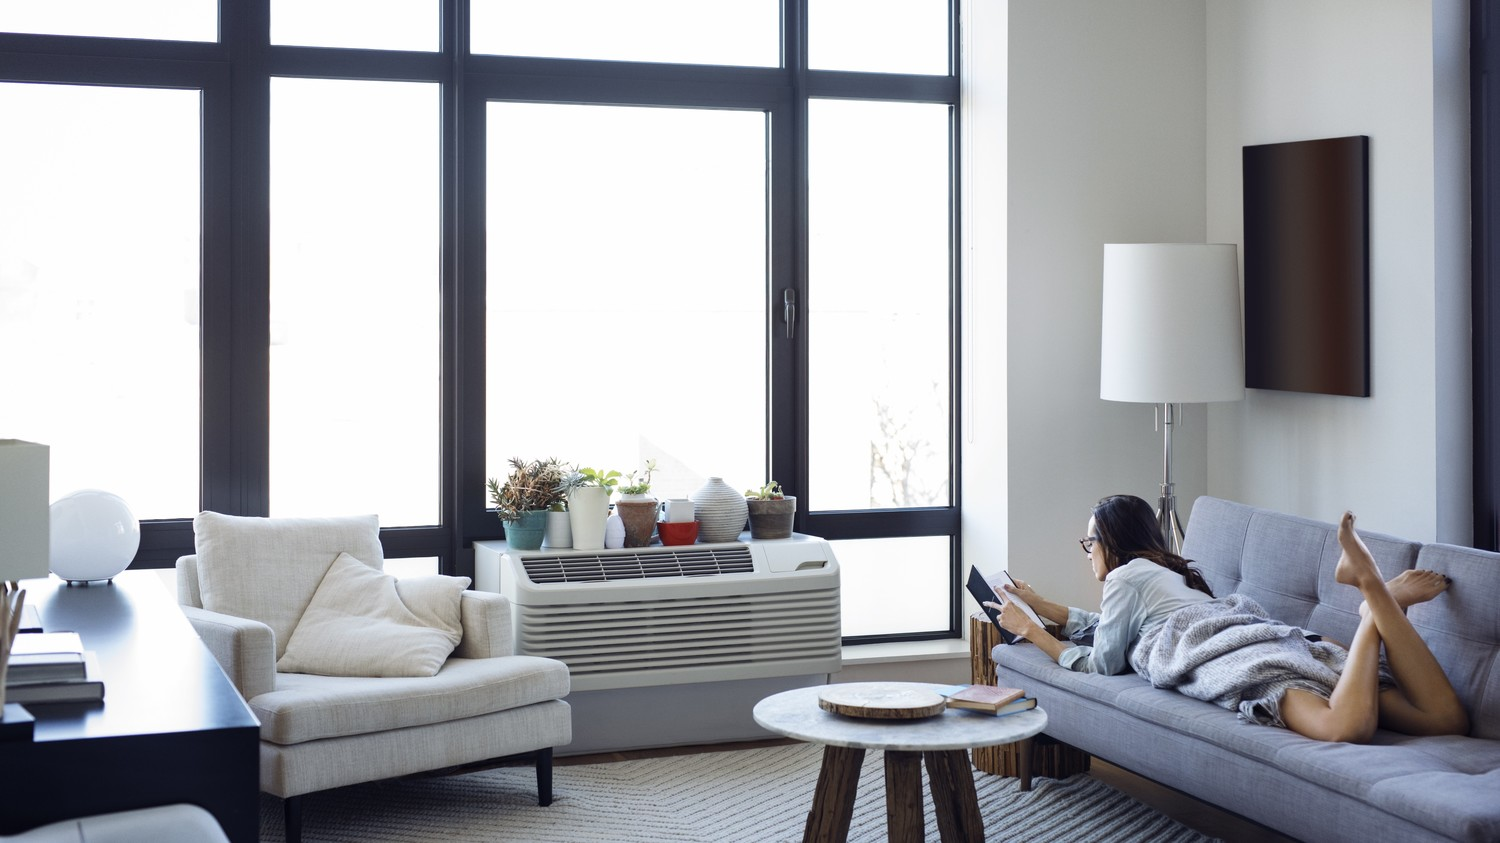 The Best Small-Space Air Conditioners to Cool Your Home